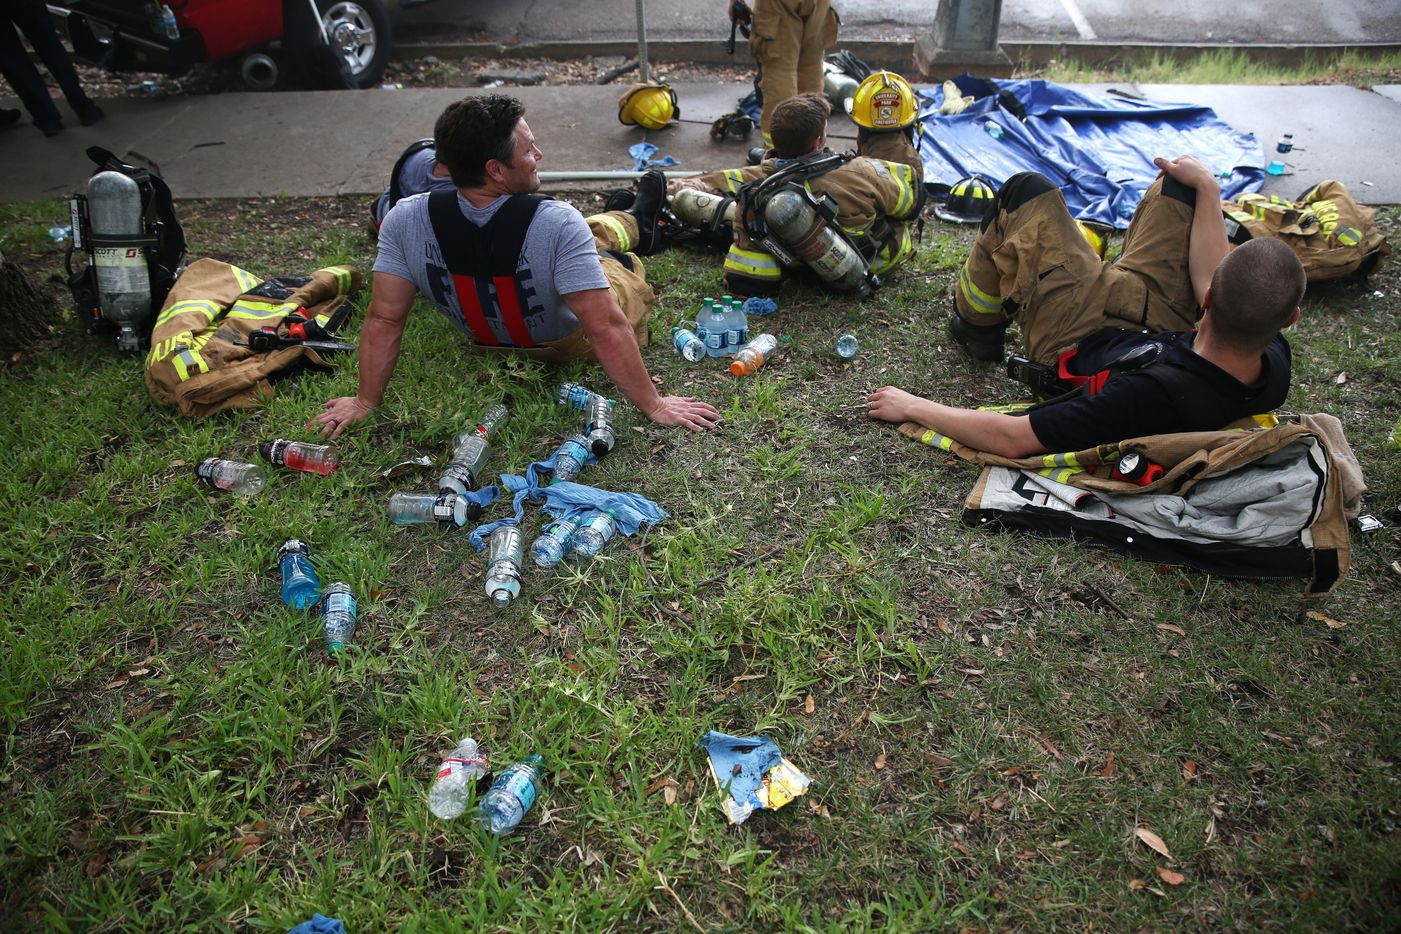 Firefighters rest while battling flames at Goff's Hamburgers in Dallas on Aug. 12, 2016. (Rose Baca/The Dallas Morning News)